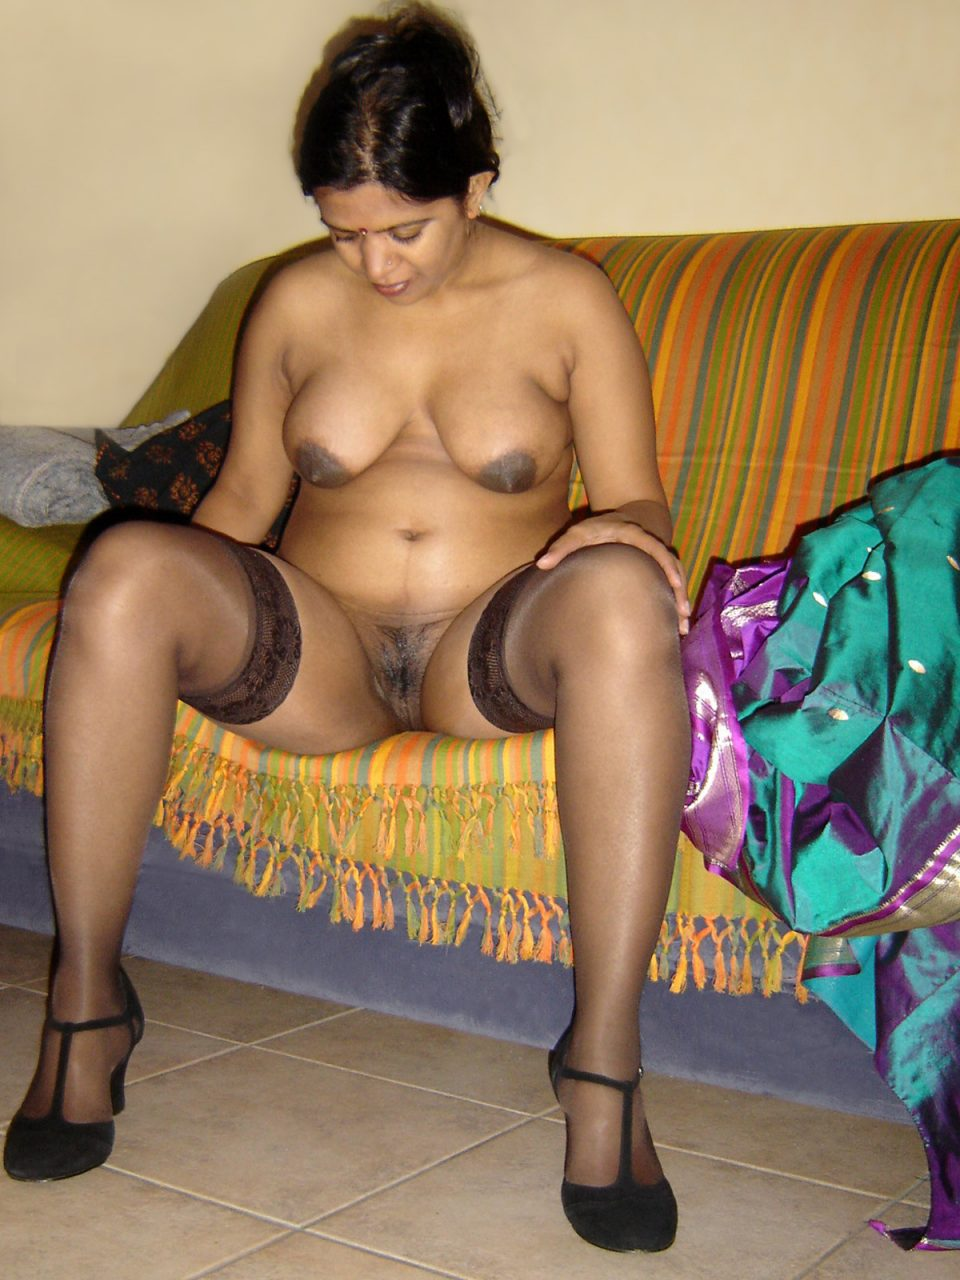 Slut! It's porn pics aunty indian chastity i'd